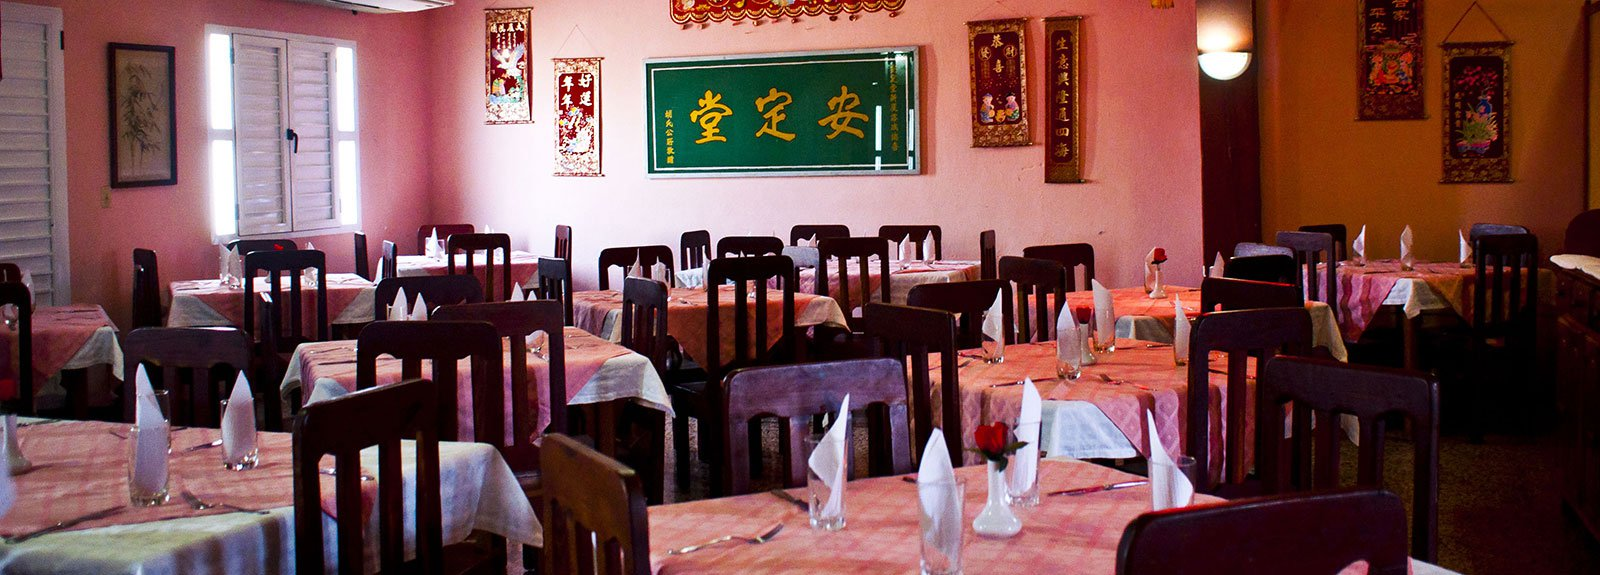 Cantones chinese restaurant in Chinatown in Old Havana with red decoration